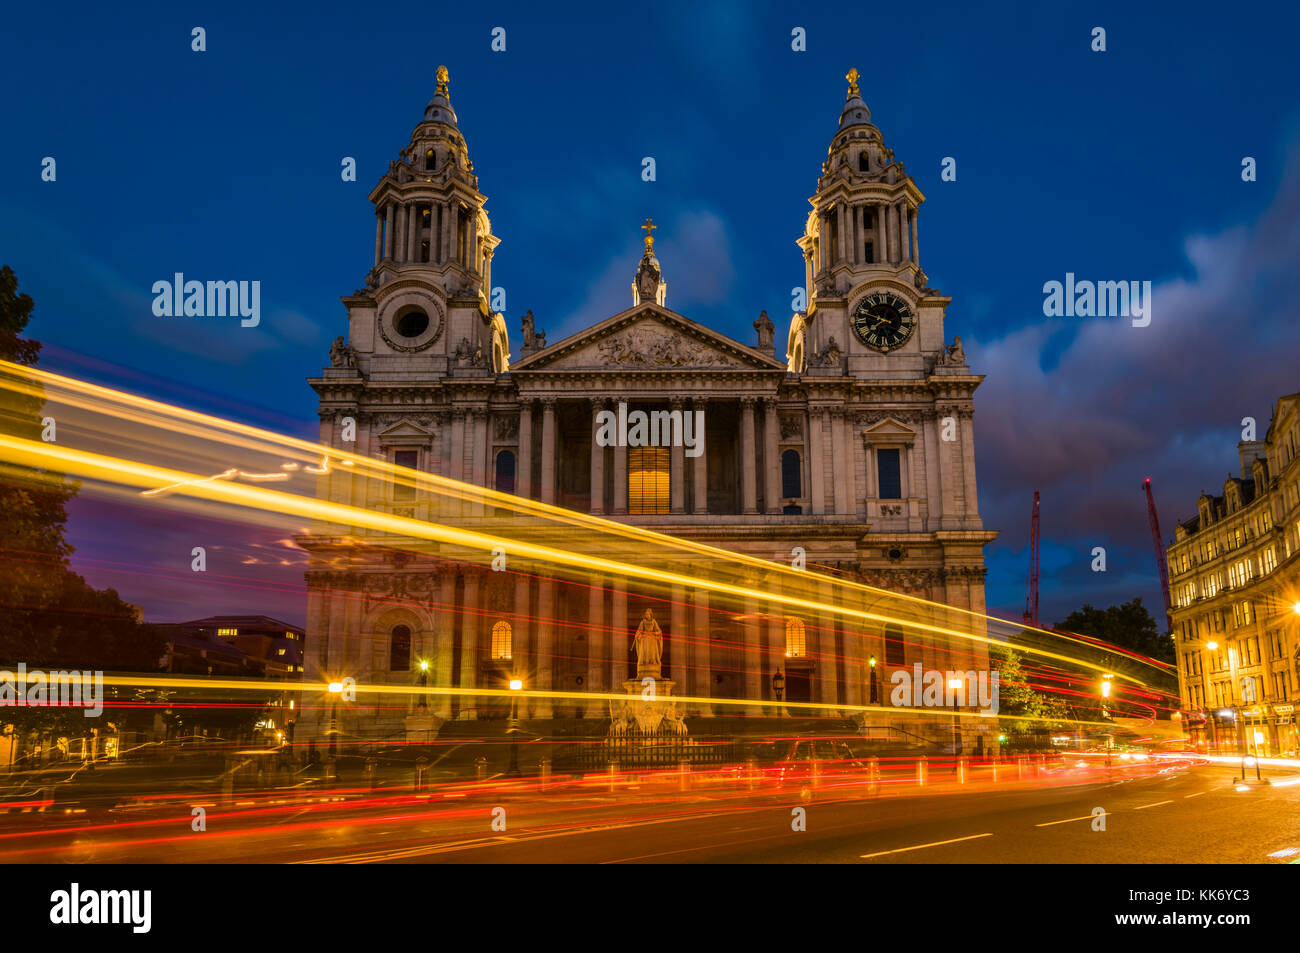 Car lights around dusk at St Paul's Cathedral, London, UK - Stock Image